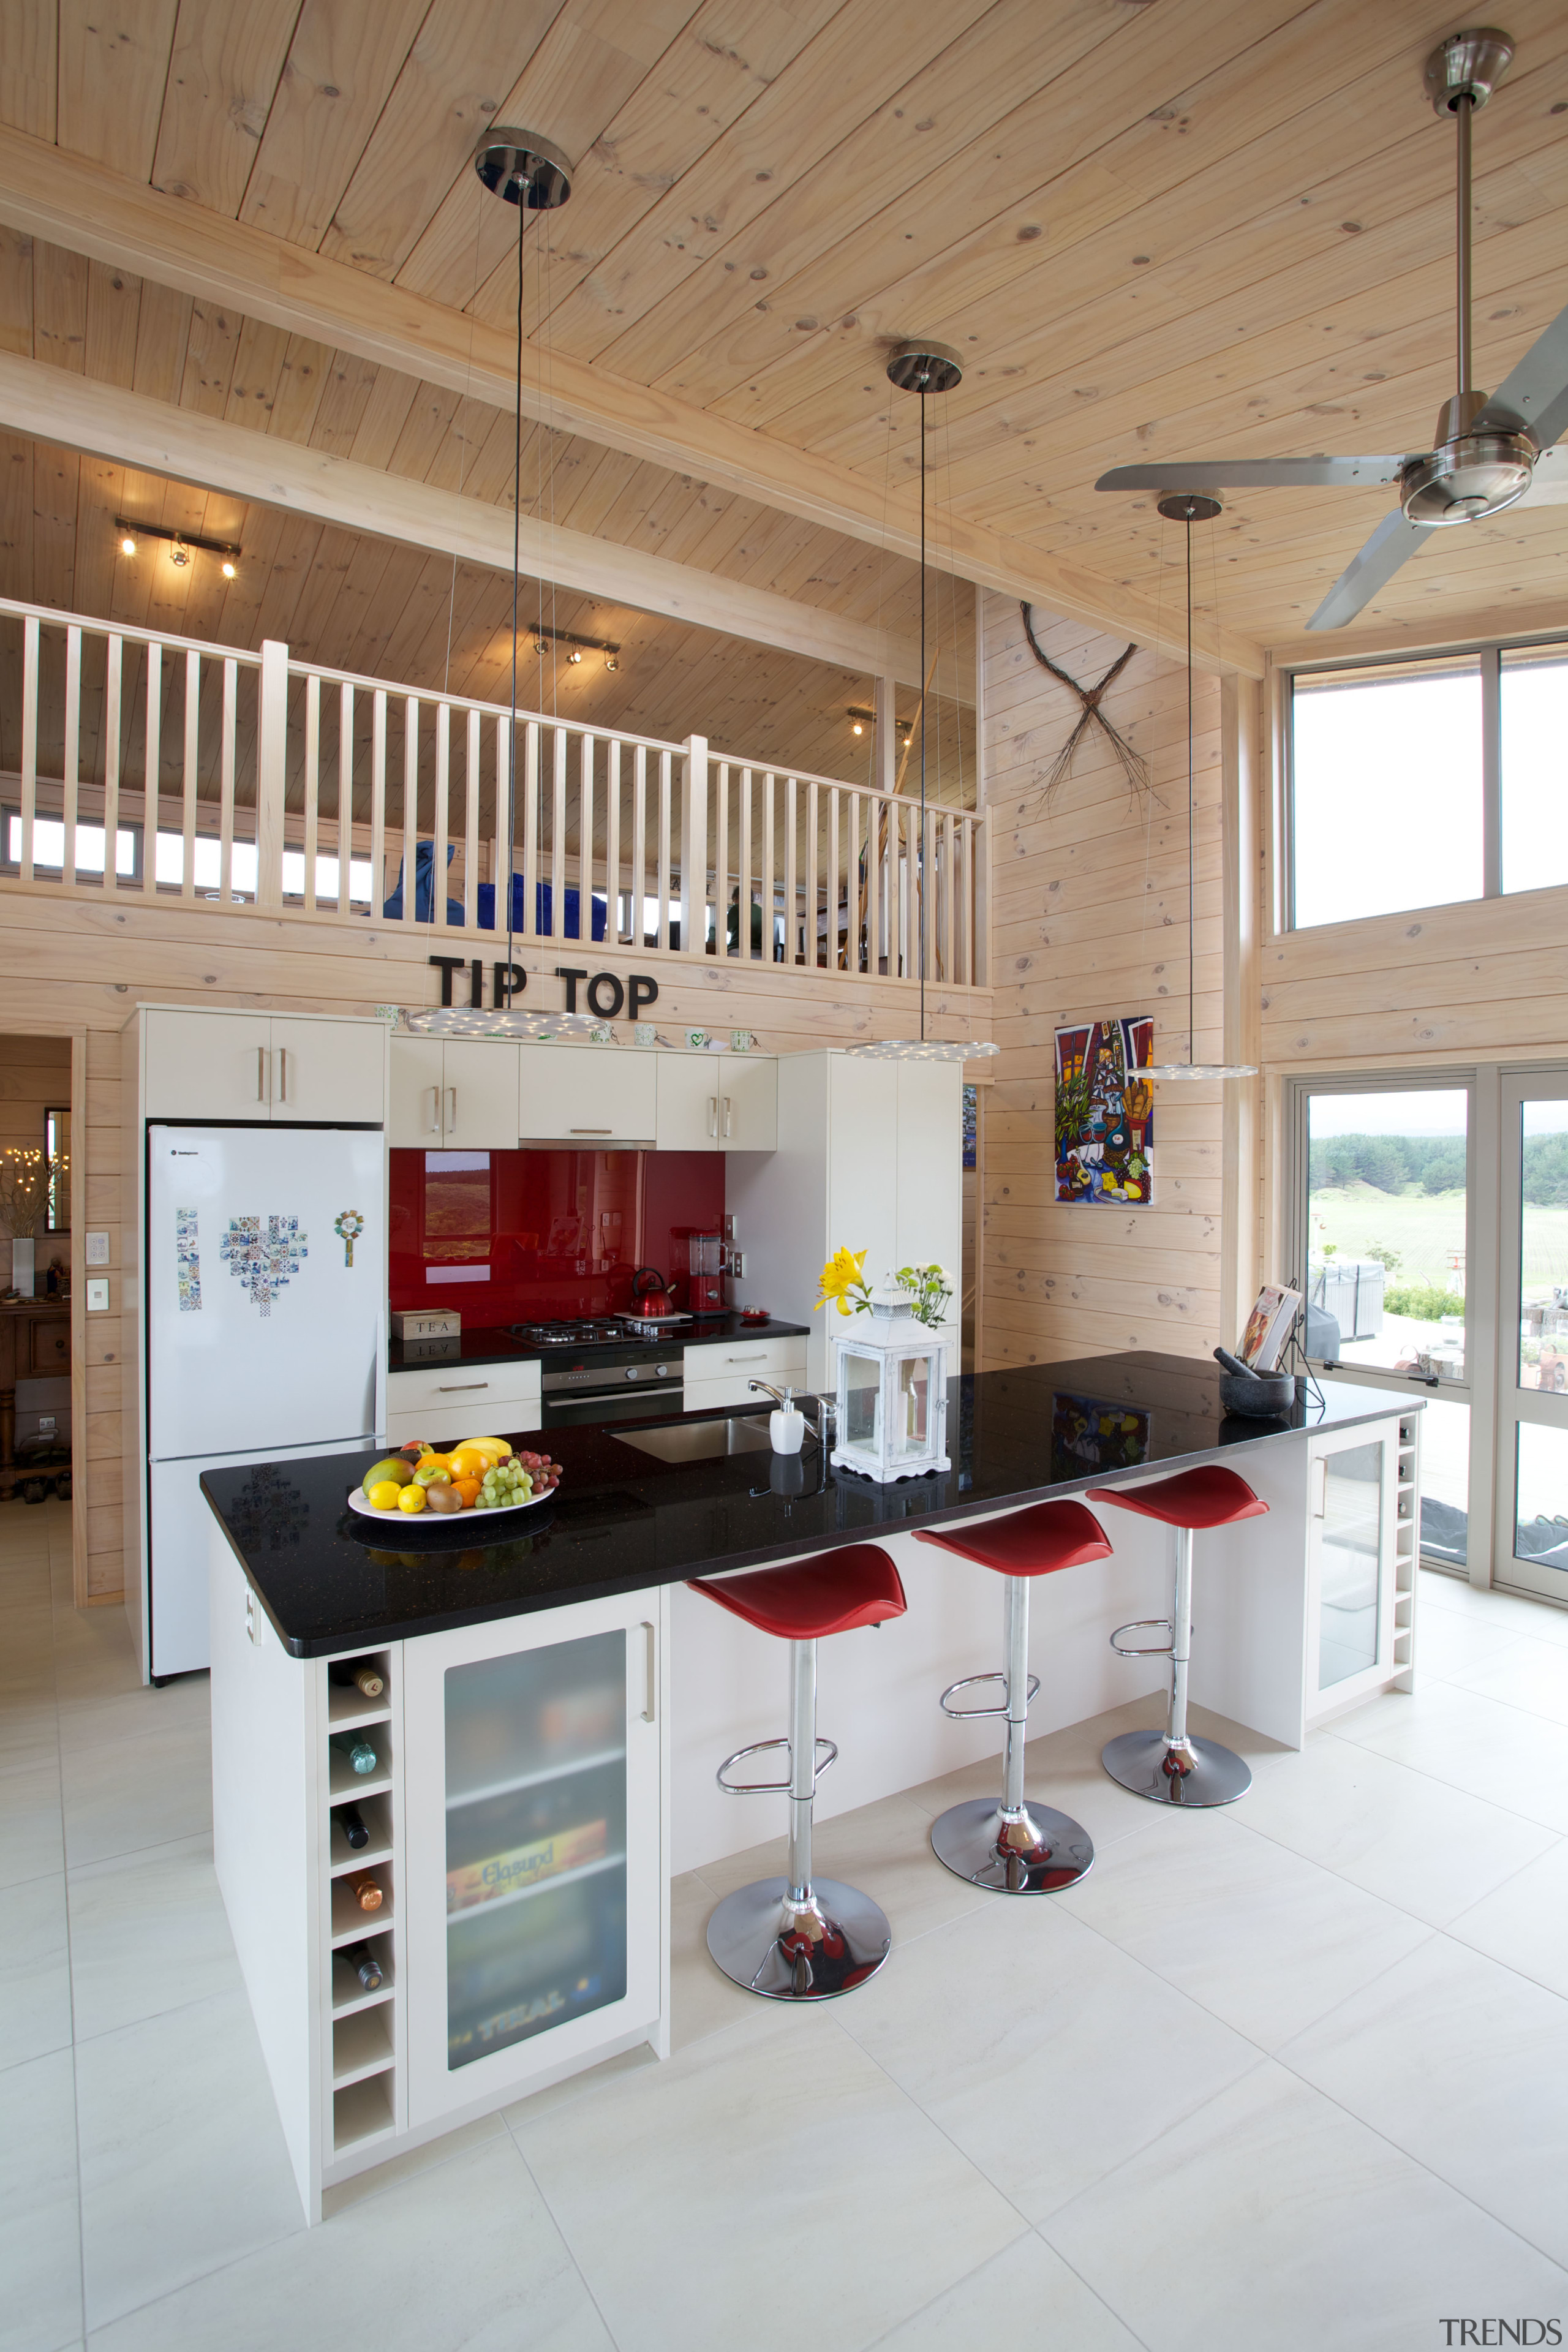 The owners of this Lockwood beach house chose countertop, interior design, kitchen, table, gray, brown, white